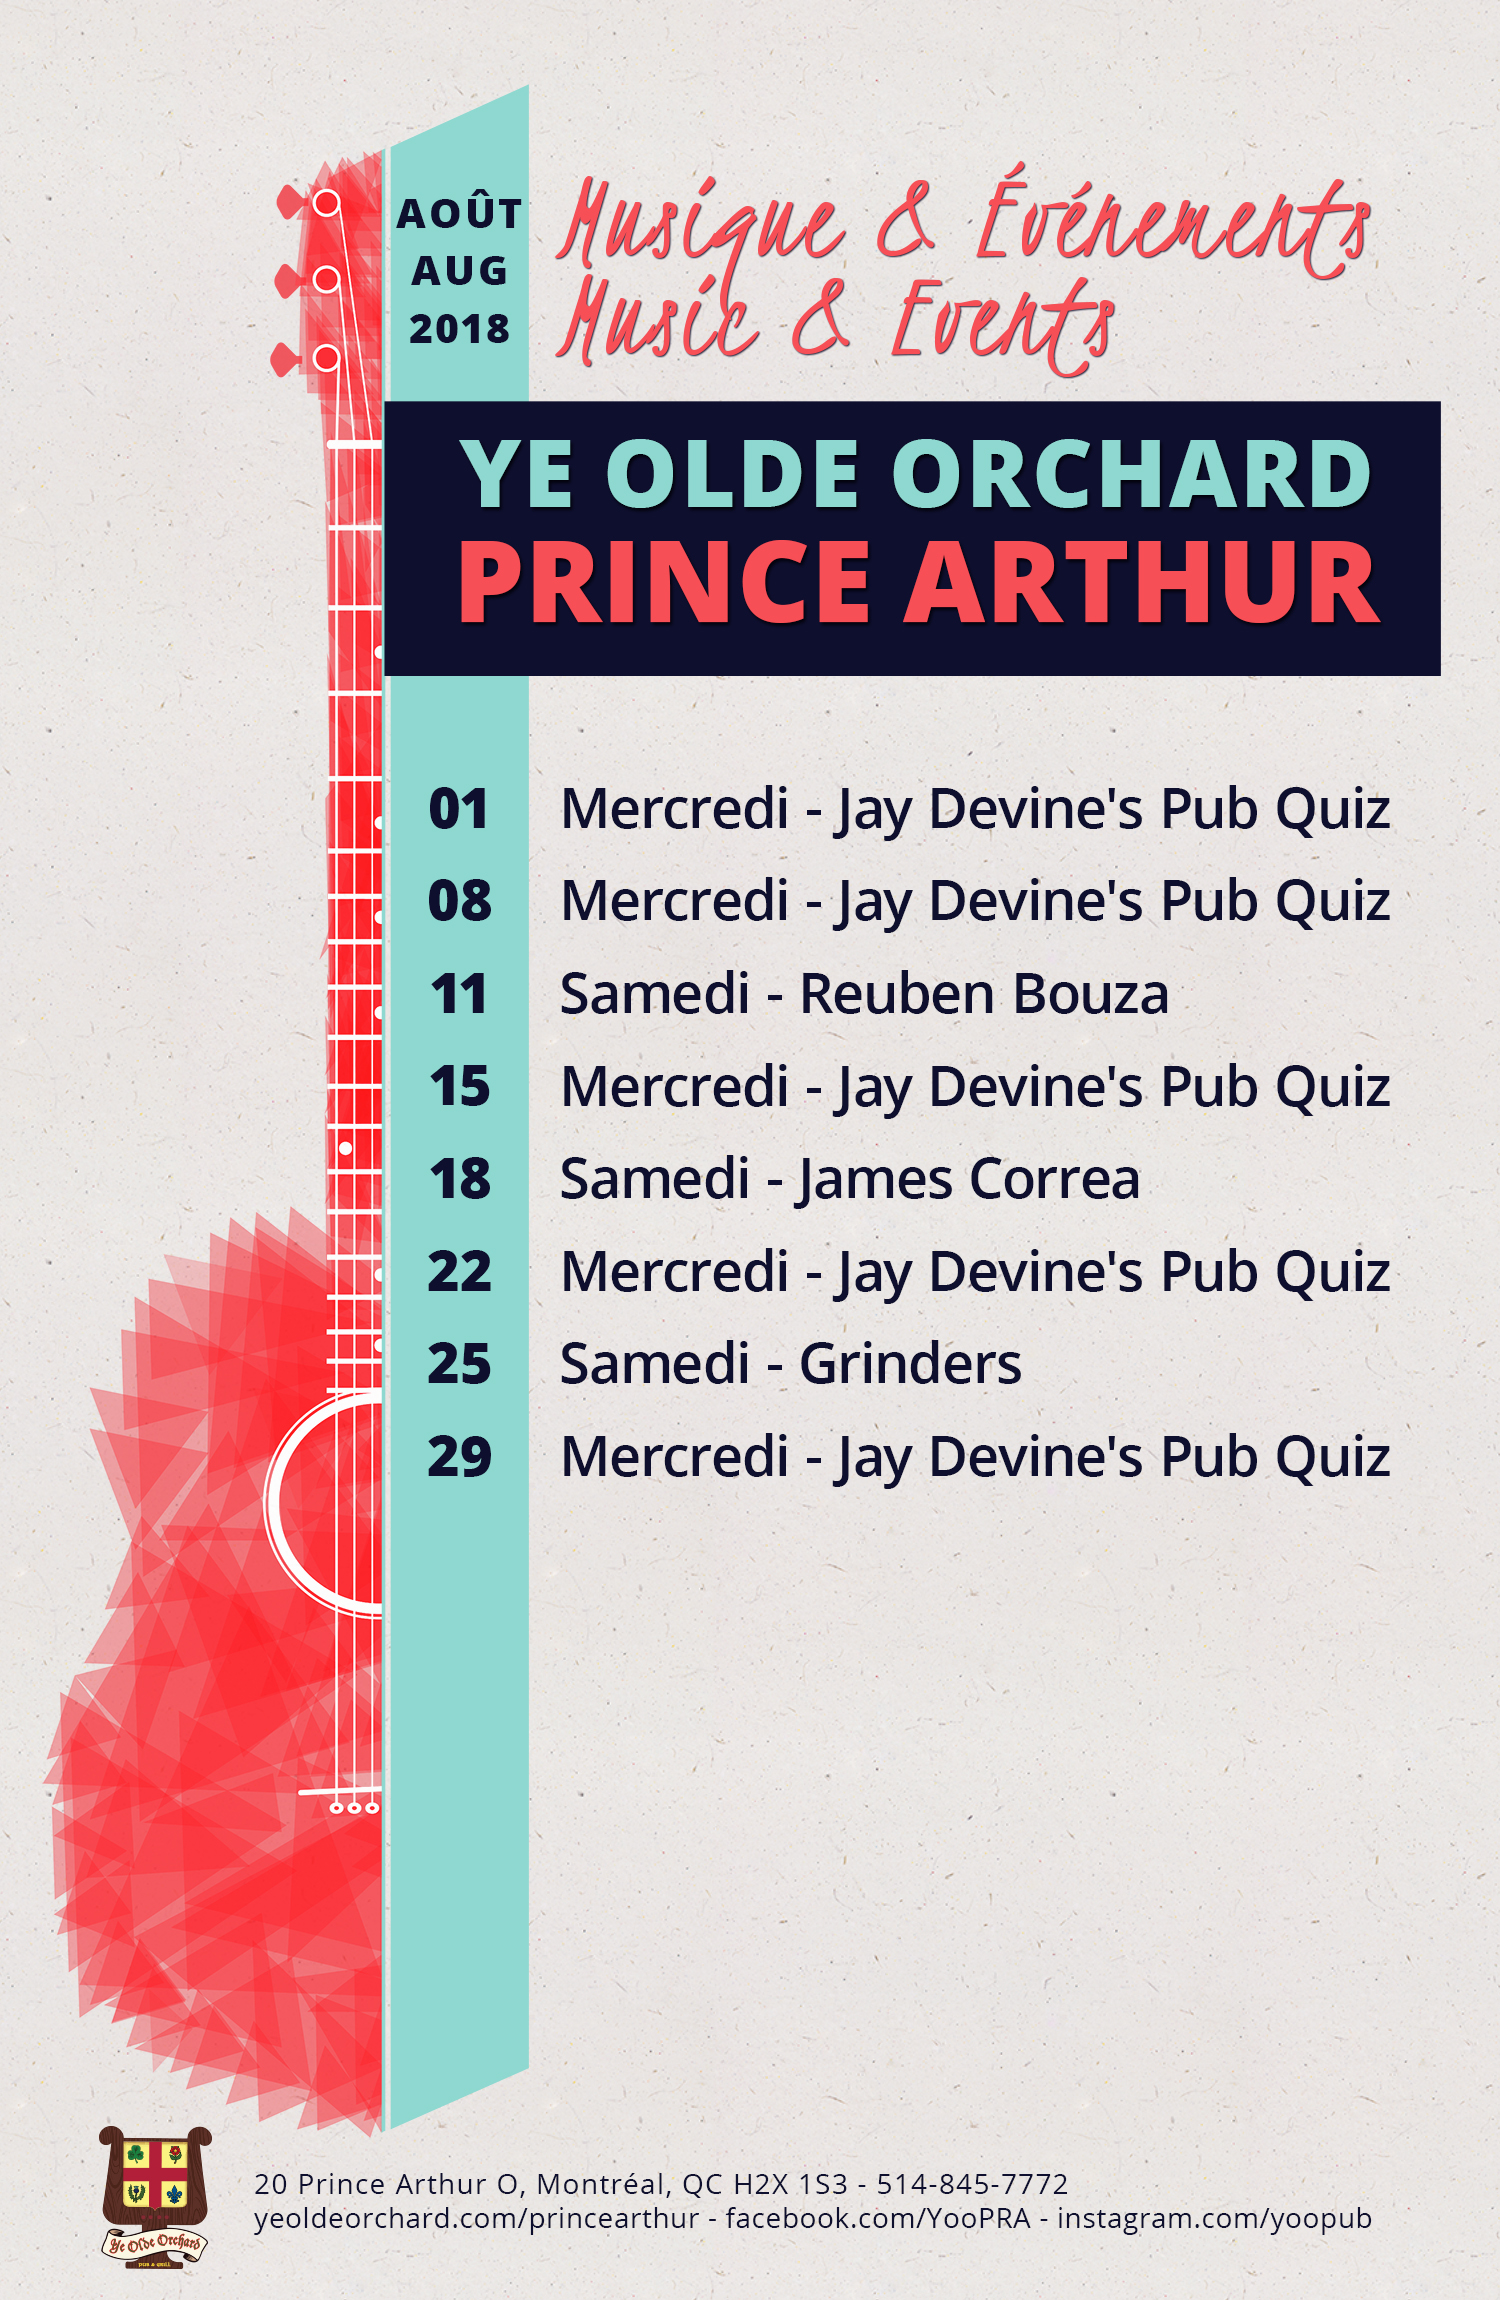 ye-olde-orchard-pub-music-and-events-calendar-prince-arthur-august-WEB